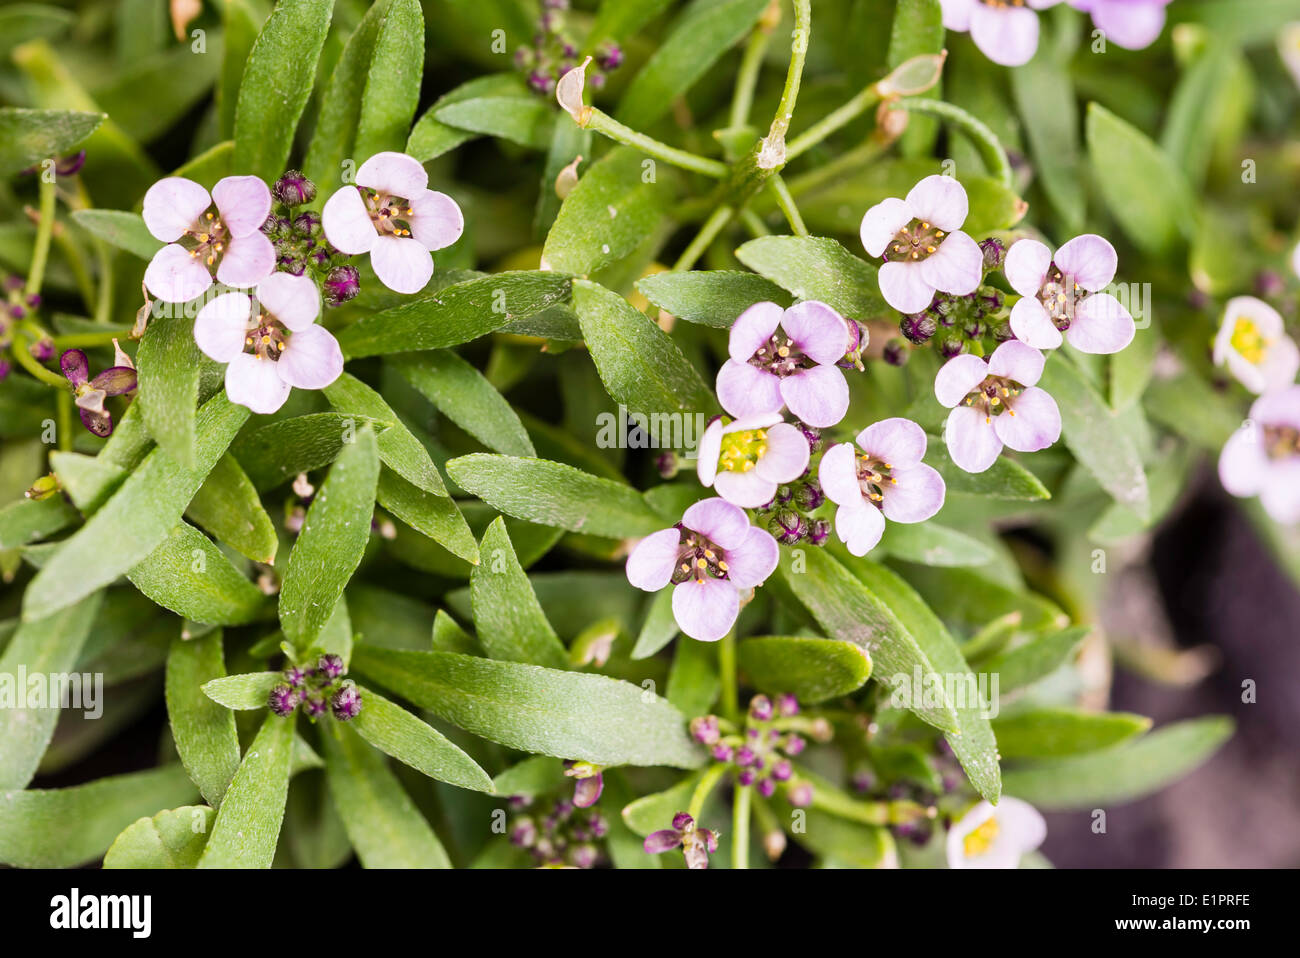 Little Pink Flowers With Four Petals In A Garden Stock Photo